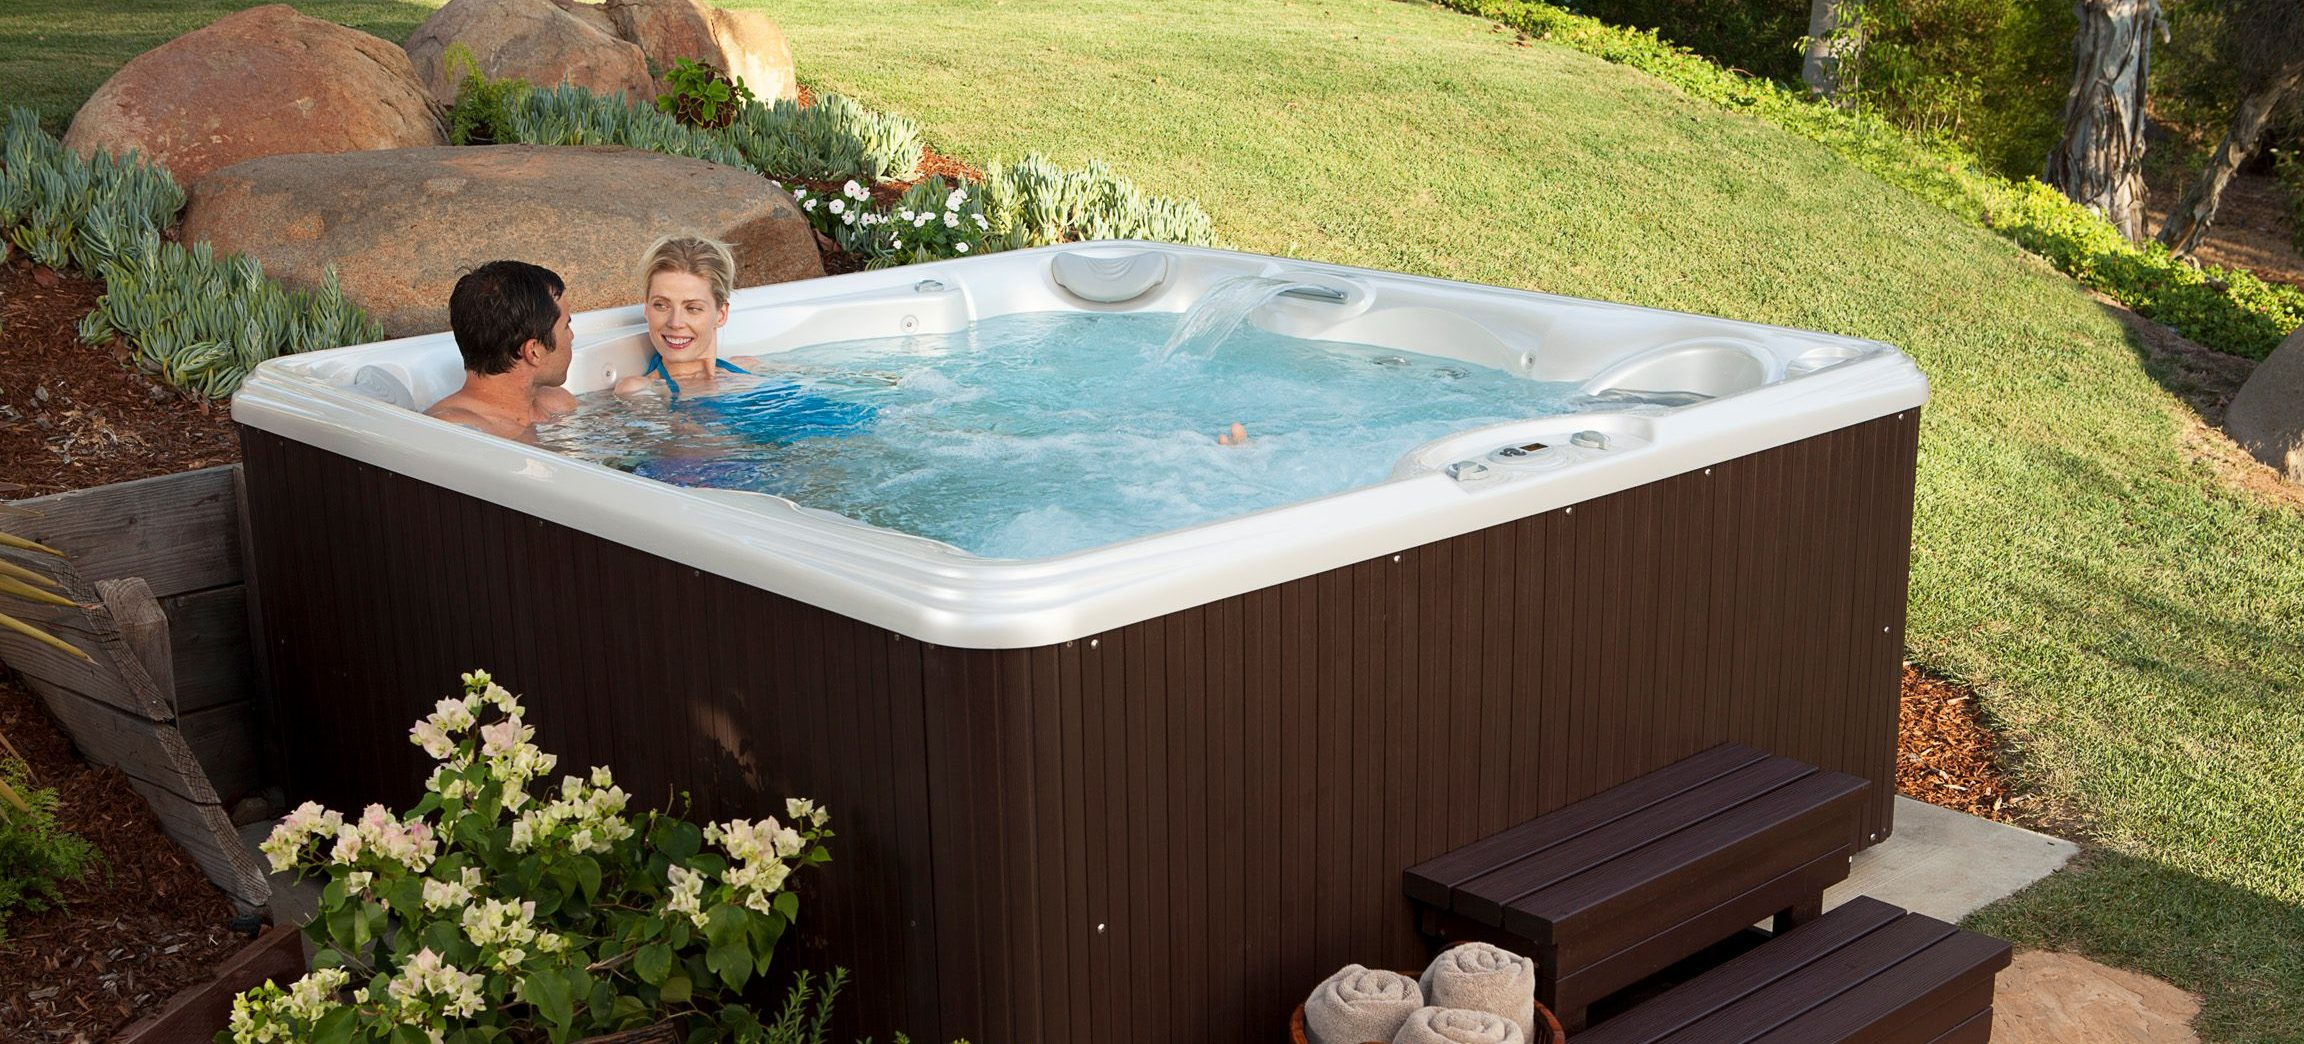 In the Mood to Save? New Vs. Used Hot Tubs